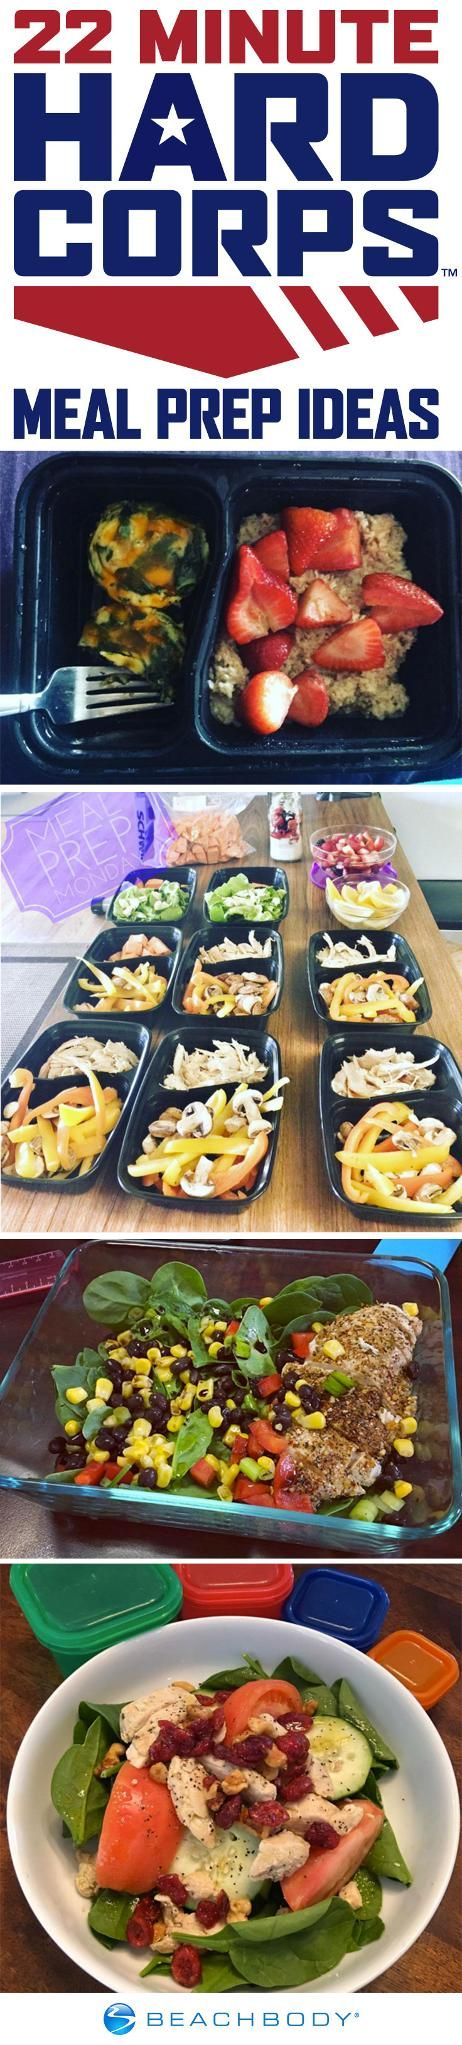 Take a look at how people are meal prepping for 22 Minute Hard Corps and get tips, inspiration, and recipes for your very own meal prep! // Beachbody // BeachbodyBlog.com